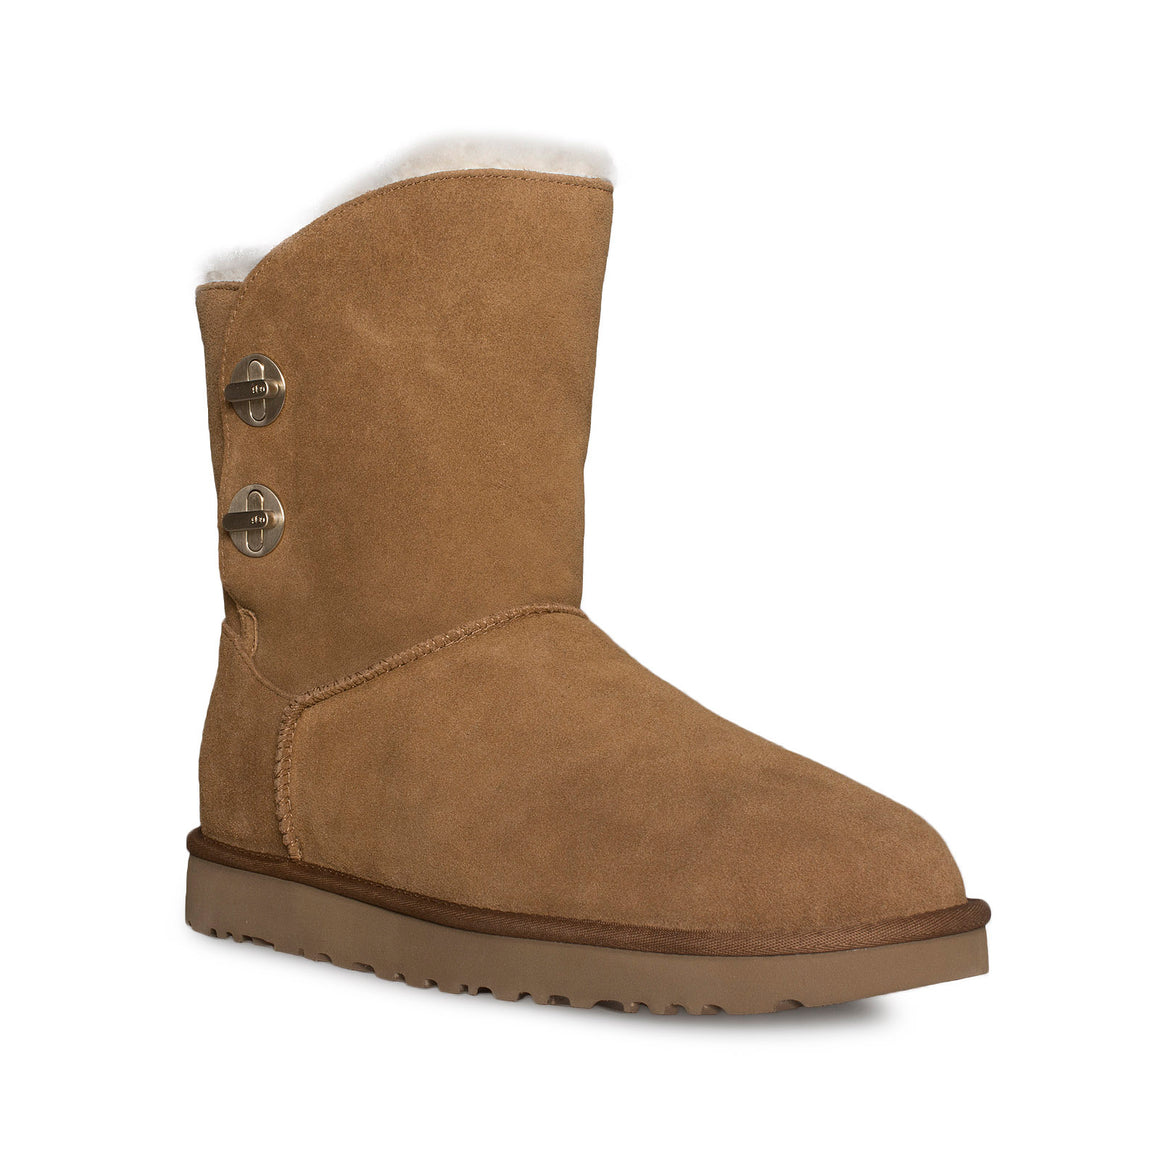 UGG Short Turnlock Chestnut Boots - Women's